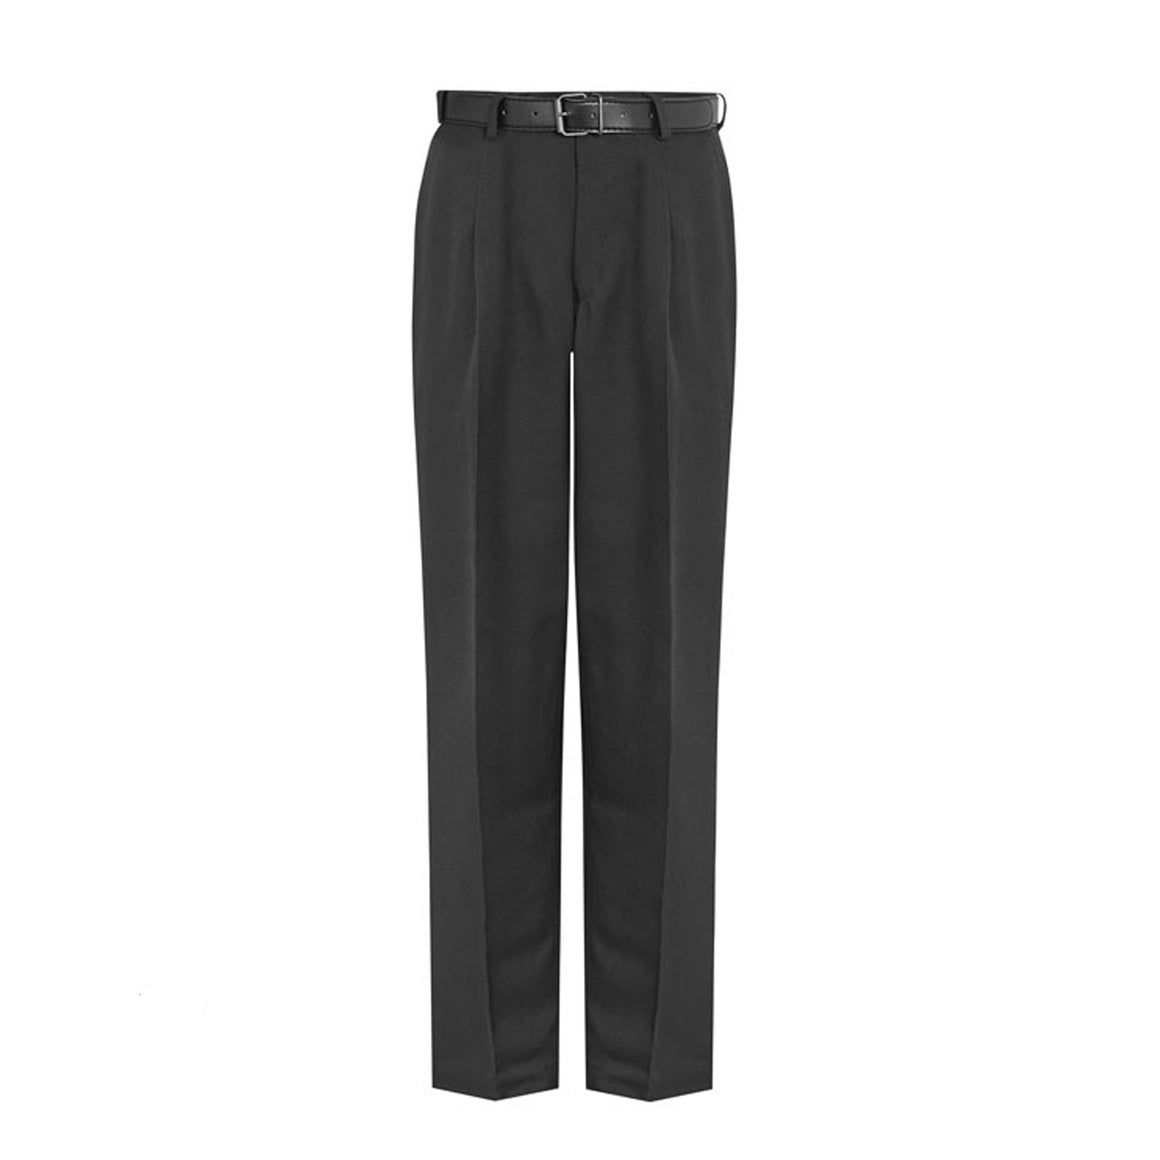 Senior Boys Pleated Trousers in Black